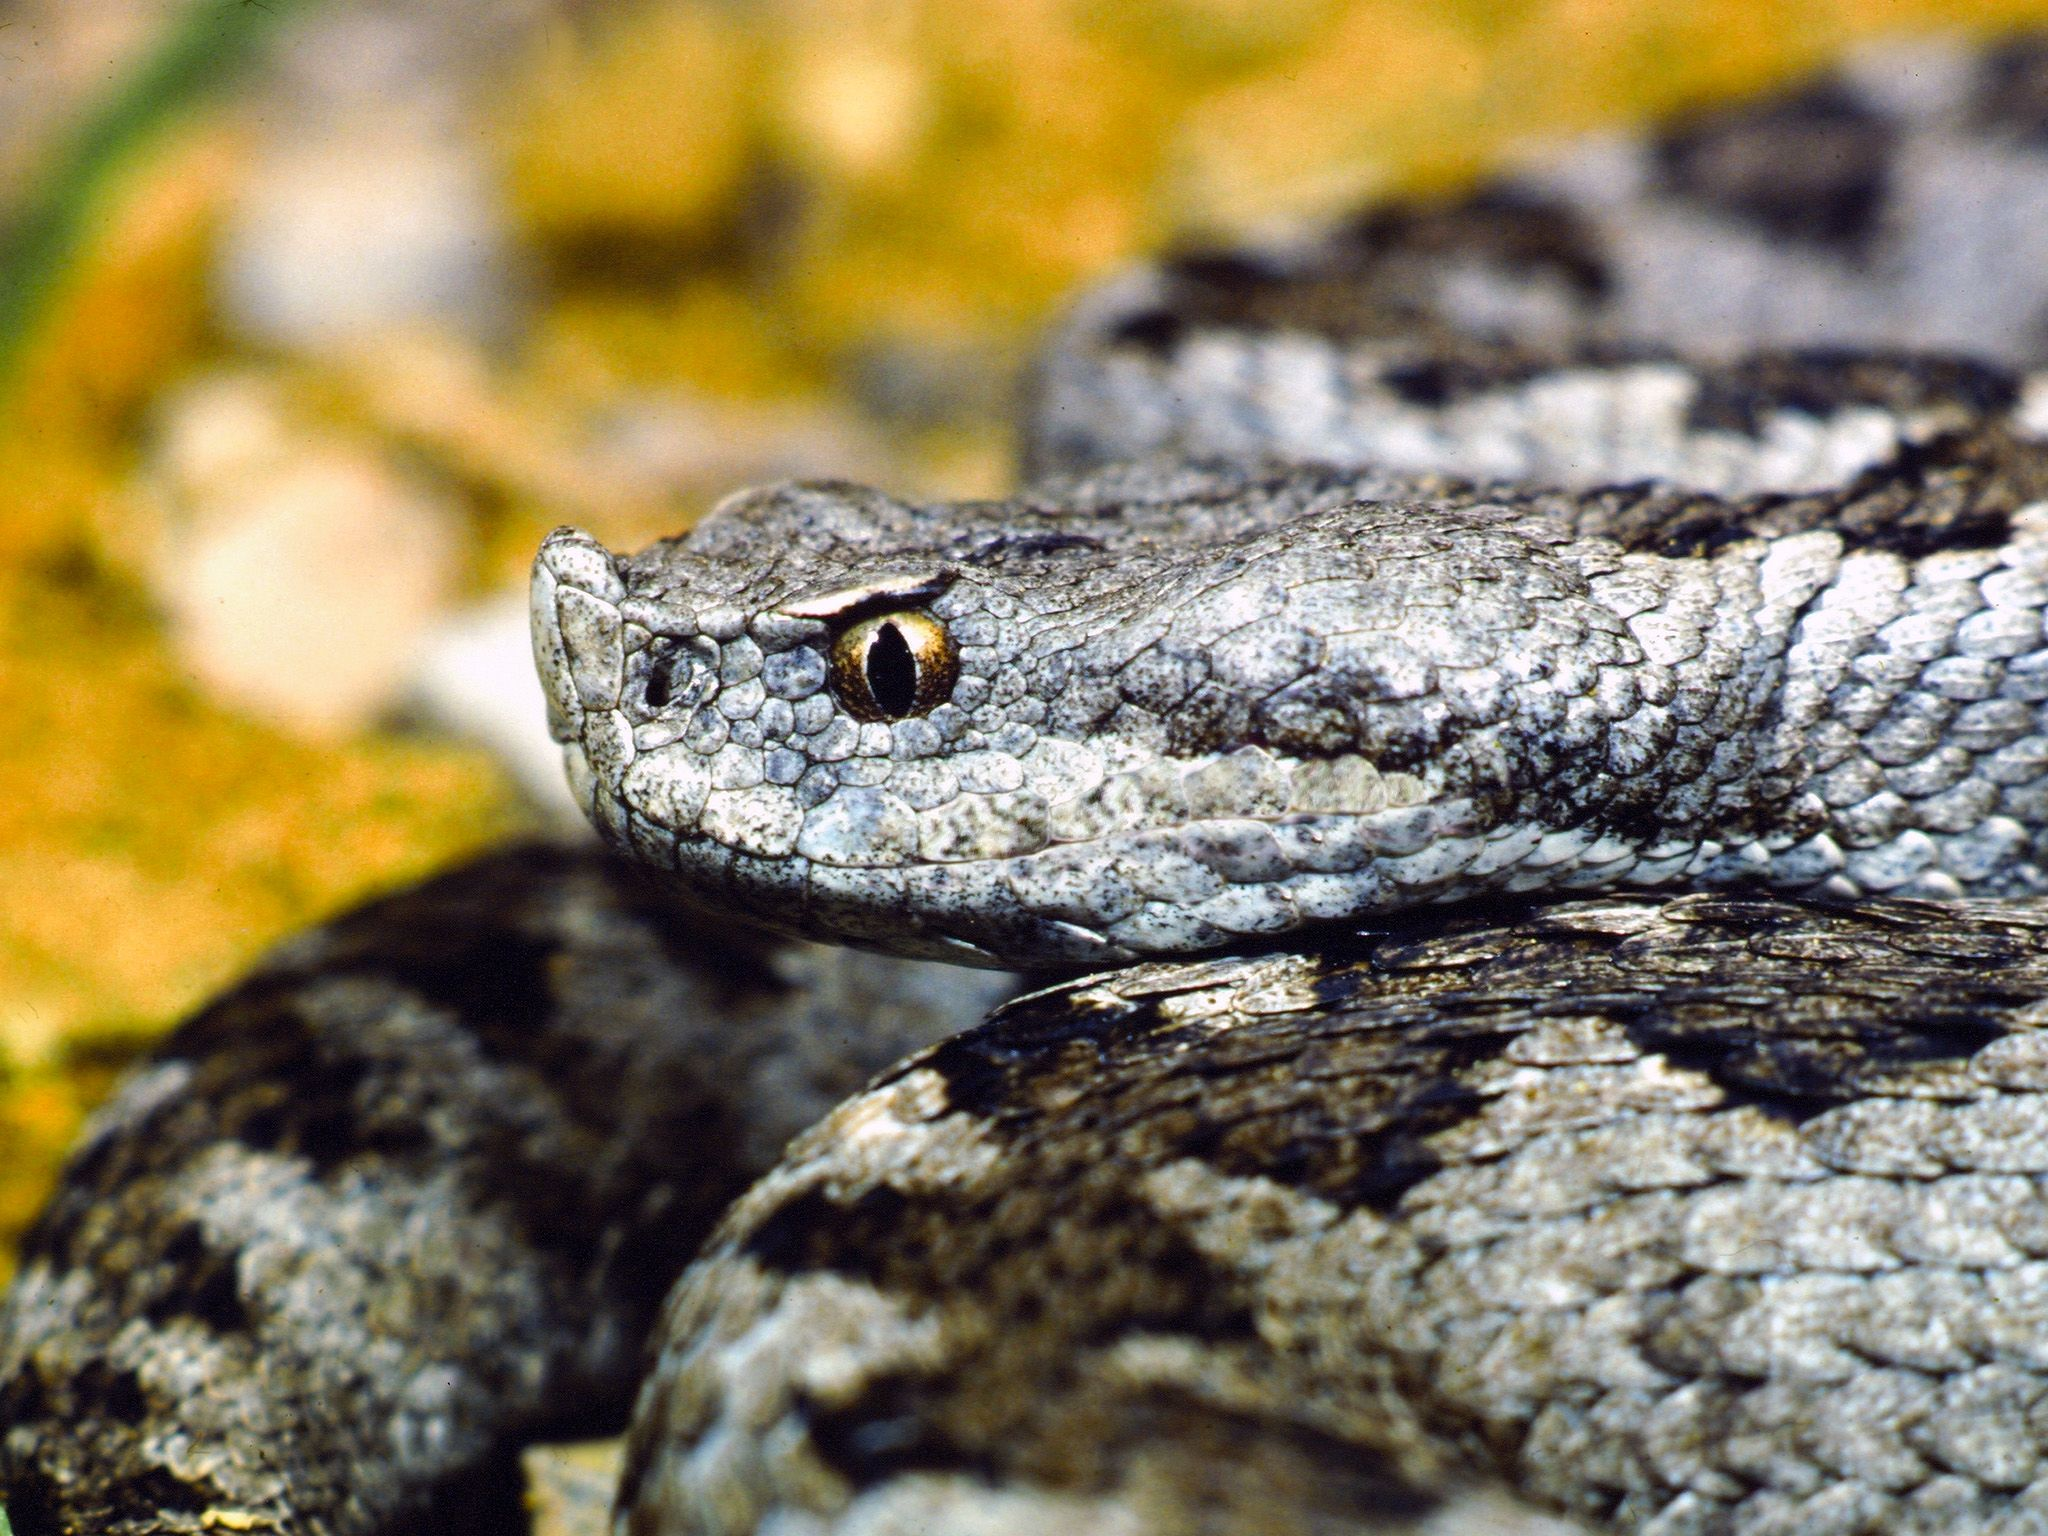 Spain: The Lataste's viper can be seen day or night but usually it hides under rocks. This i... [Photo of the day - دسامبر 2014]